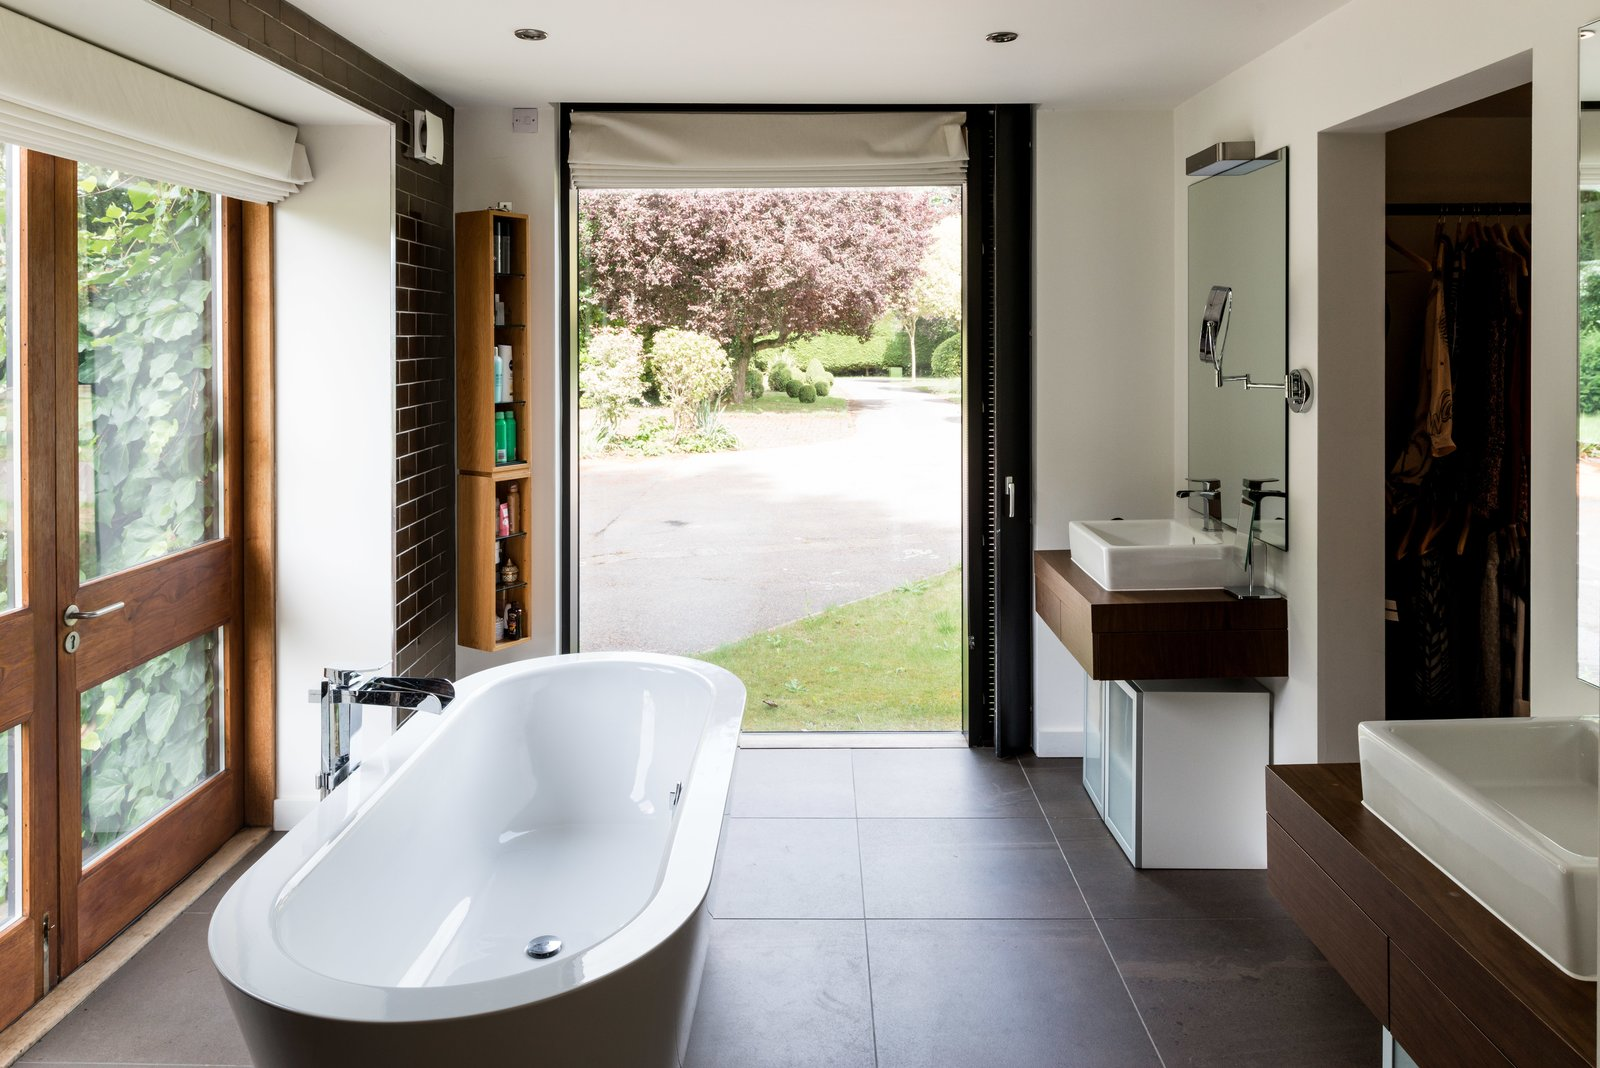 Eashing House master bath with freestanding tub